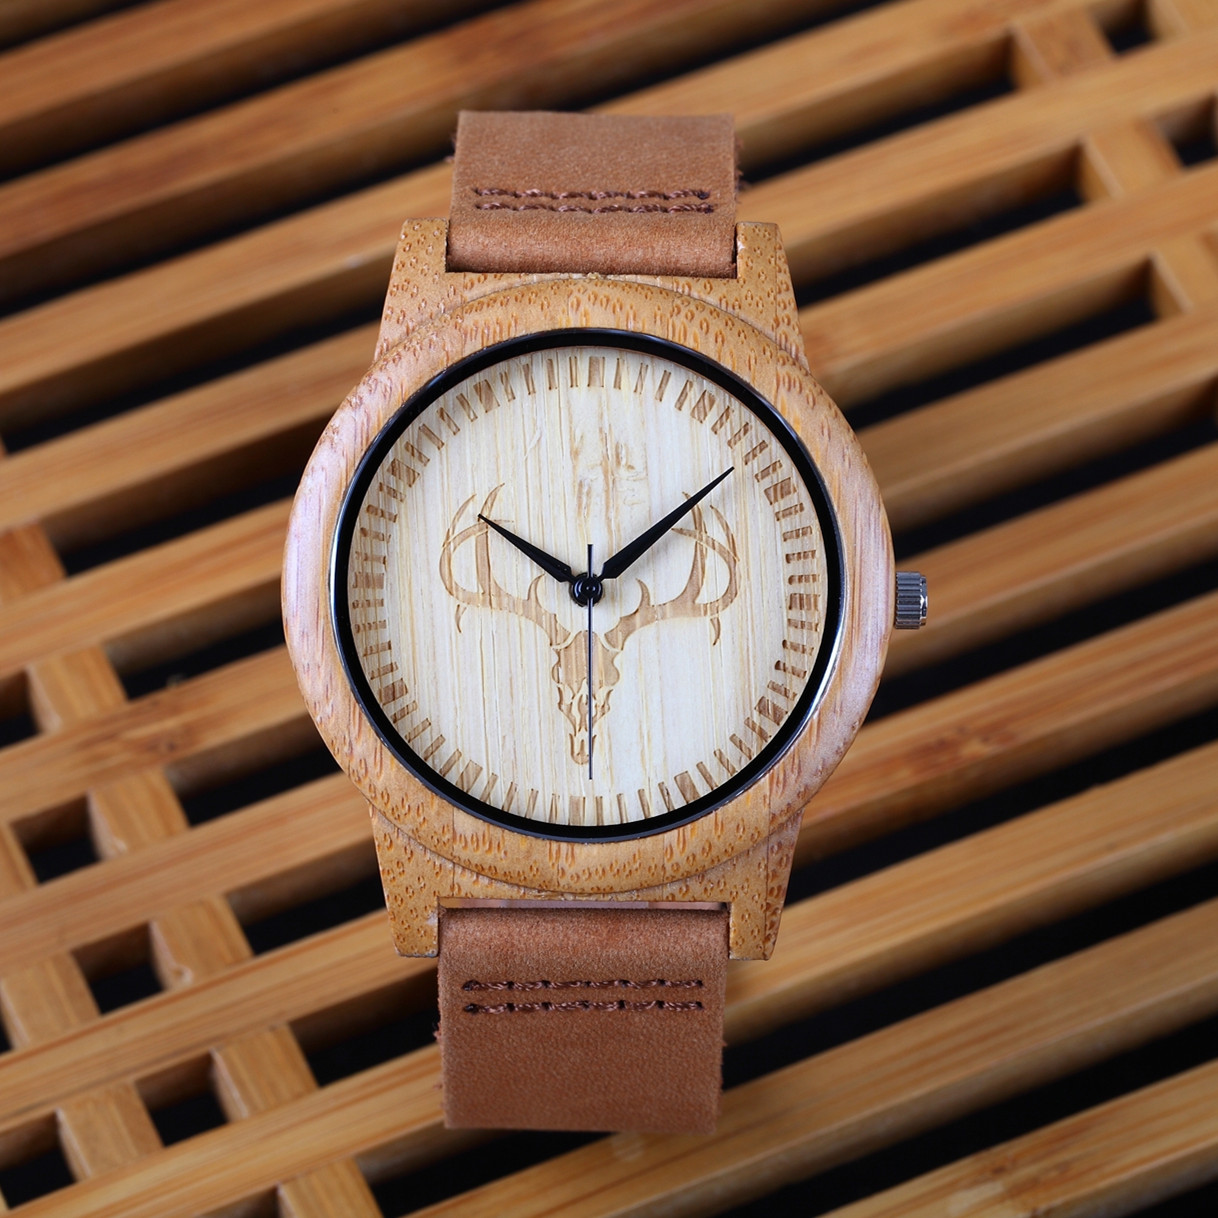 2018 Men's Women's Bamboo Wooden Wristwatches With Genuine Leather Band Luxury Deer Wood Watches for Men women as Gifts Item цена